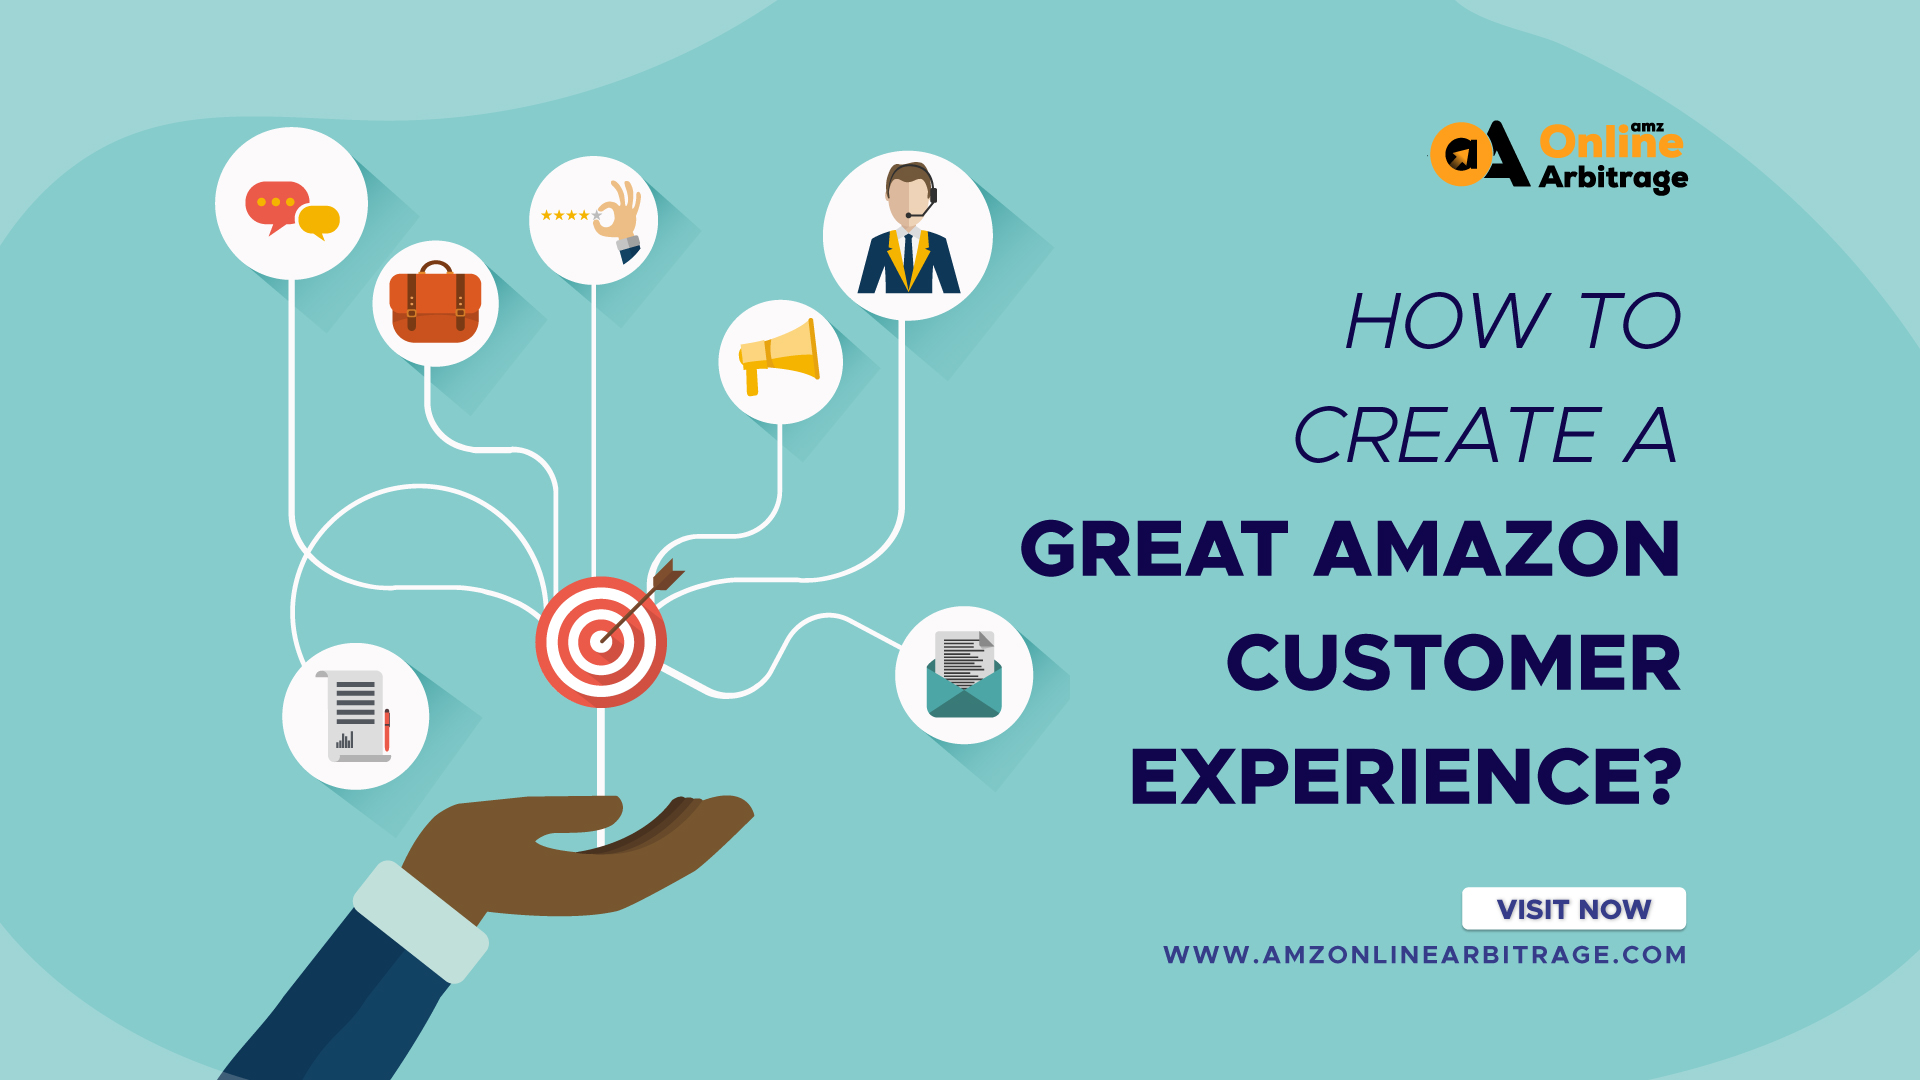 HOW TO CREATE A GREAT AMAZON CUSTOMER EXPERIENCE?